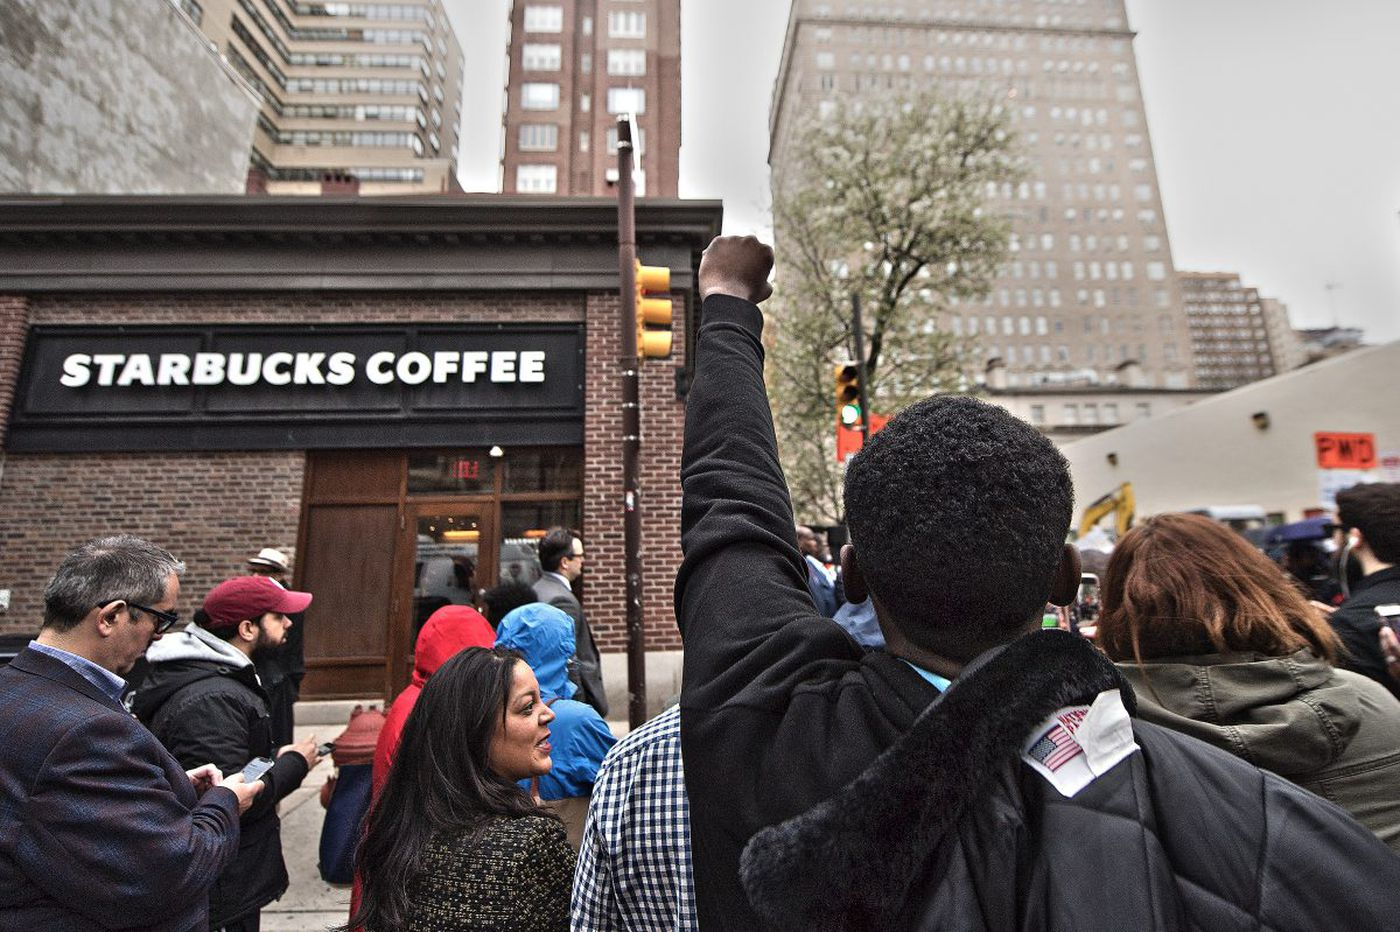 Starbucks to close all U.S. stores on May 29 for racial-bias training after arrests in Philadelphia